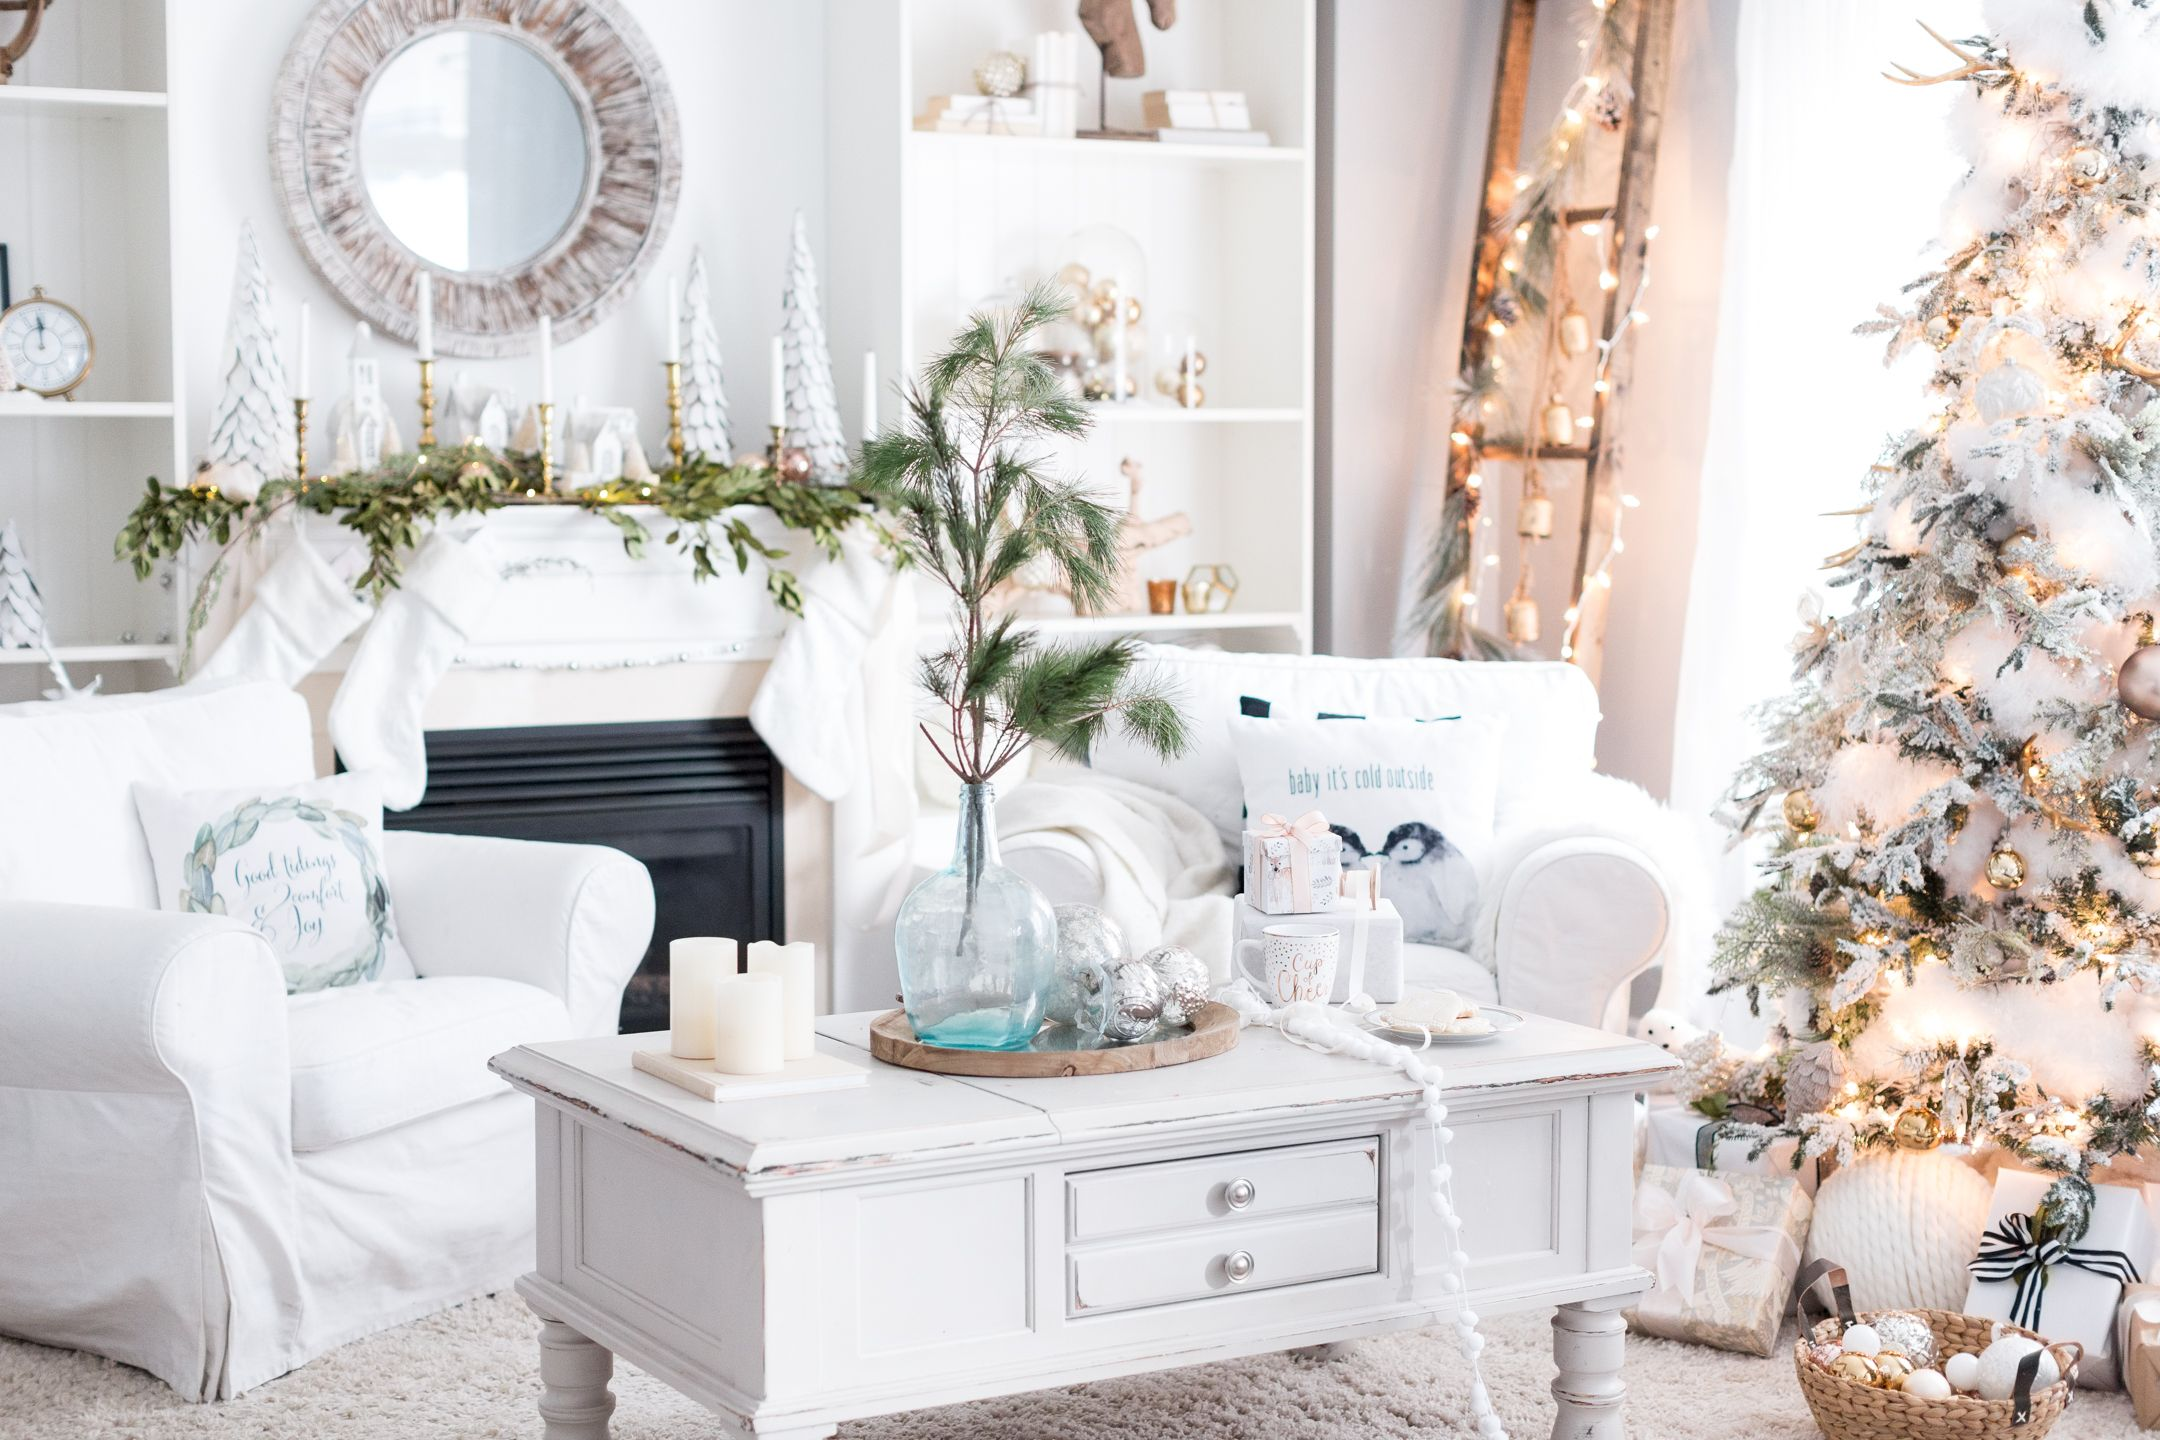 20 Best Holiday Decorating Ideas For Small Spaces